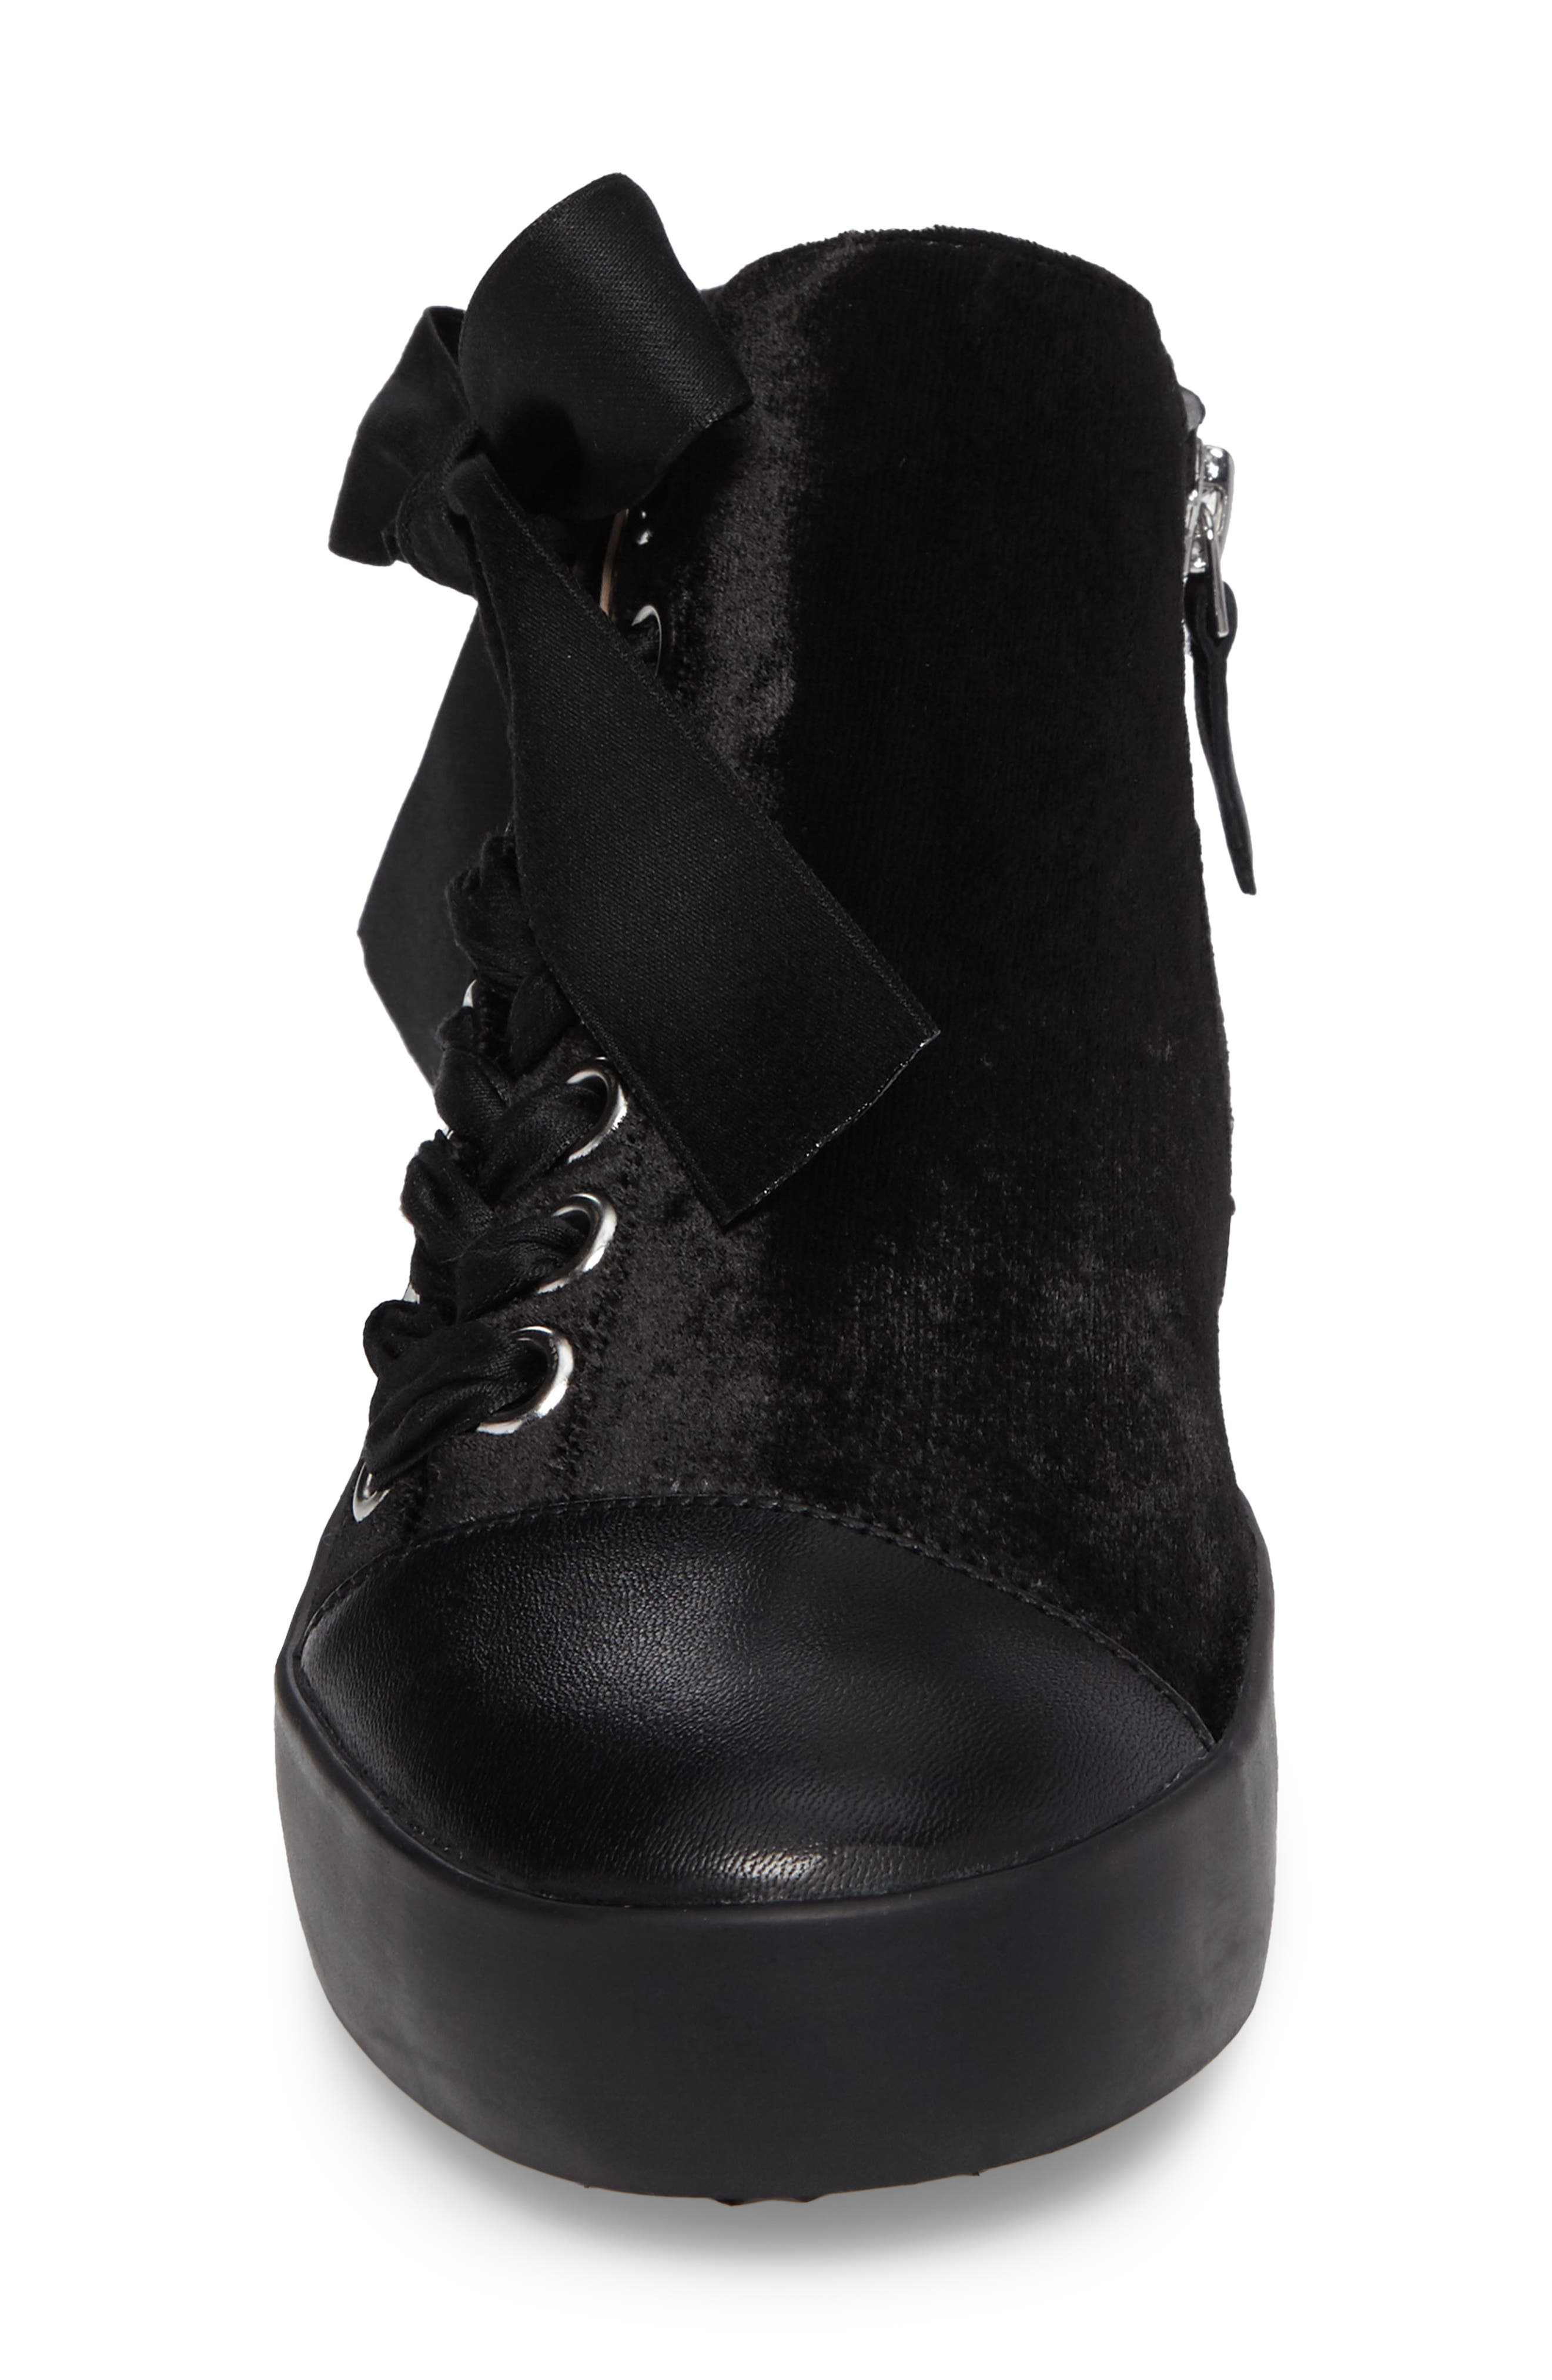 Valerie High Top Sneaker,                             Alternate thumbnail 4, color,                             Black Fabric\Leather